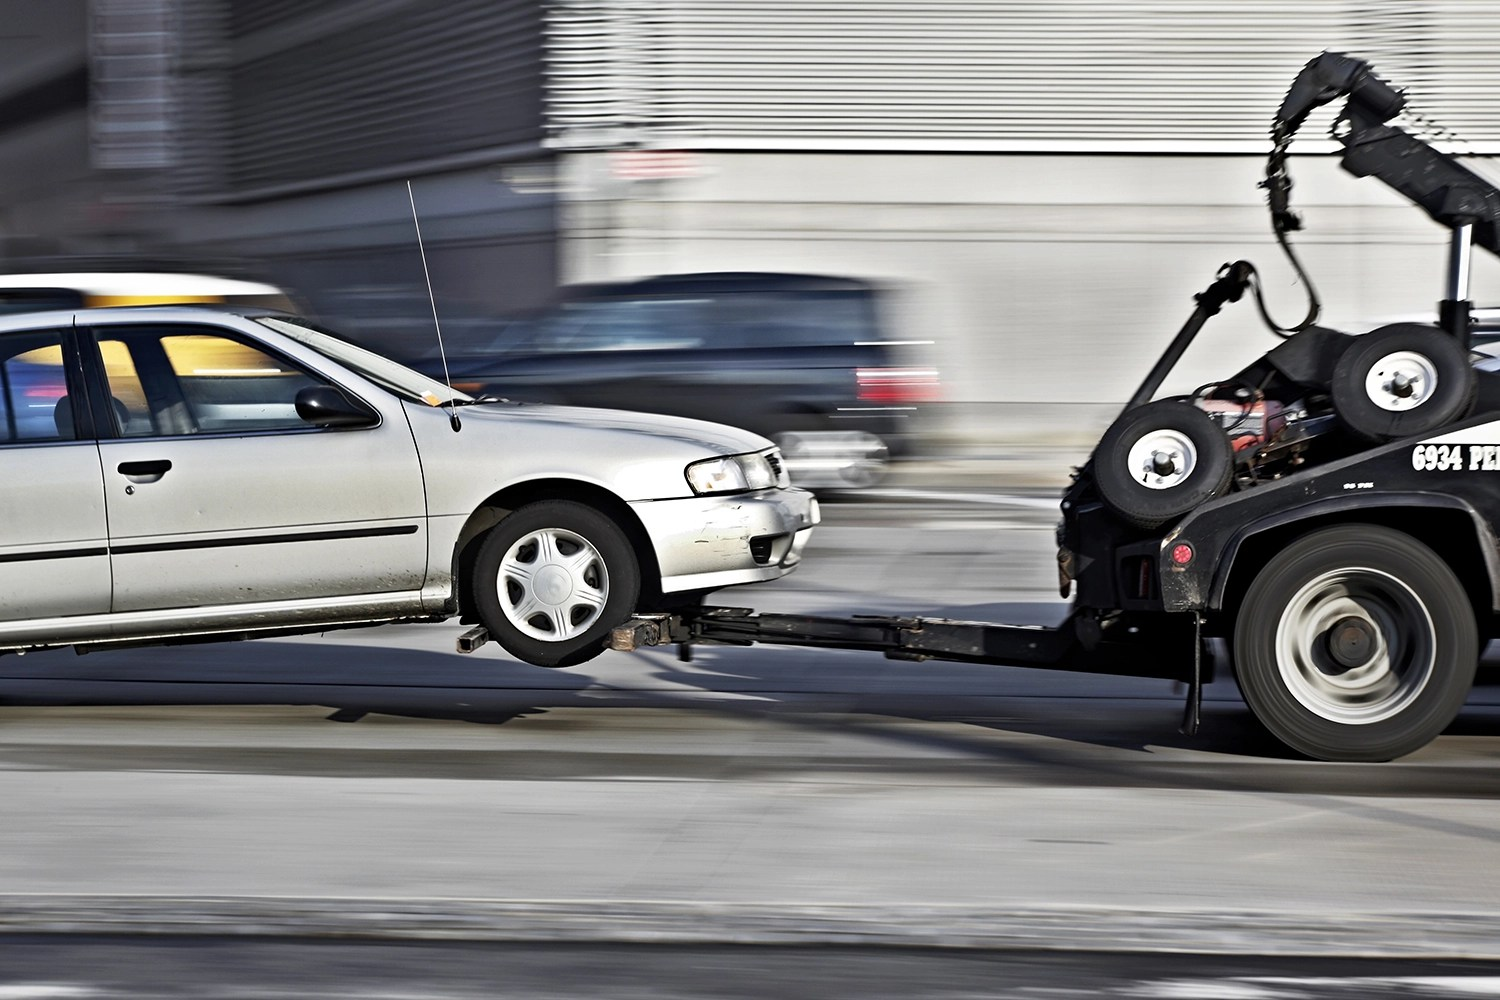 Towing Car New Nevada Towing Law May Save You Hundreds Of Dollars